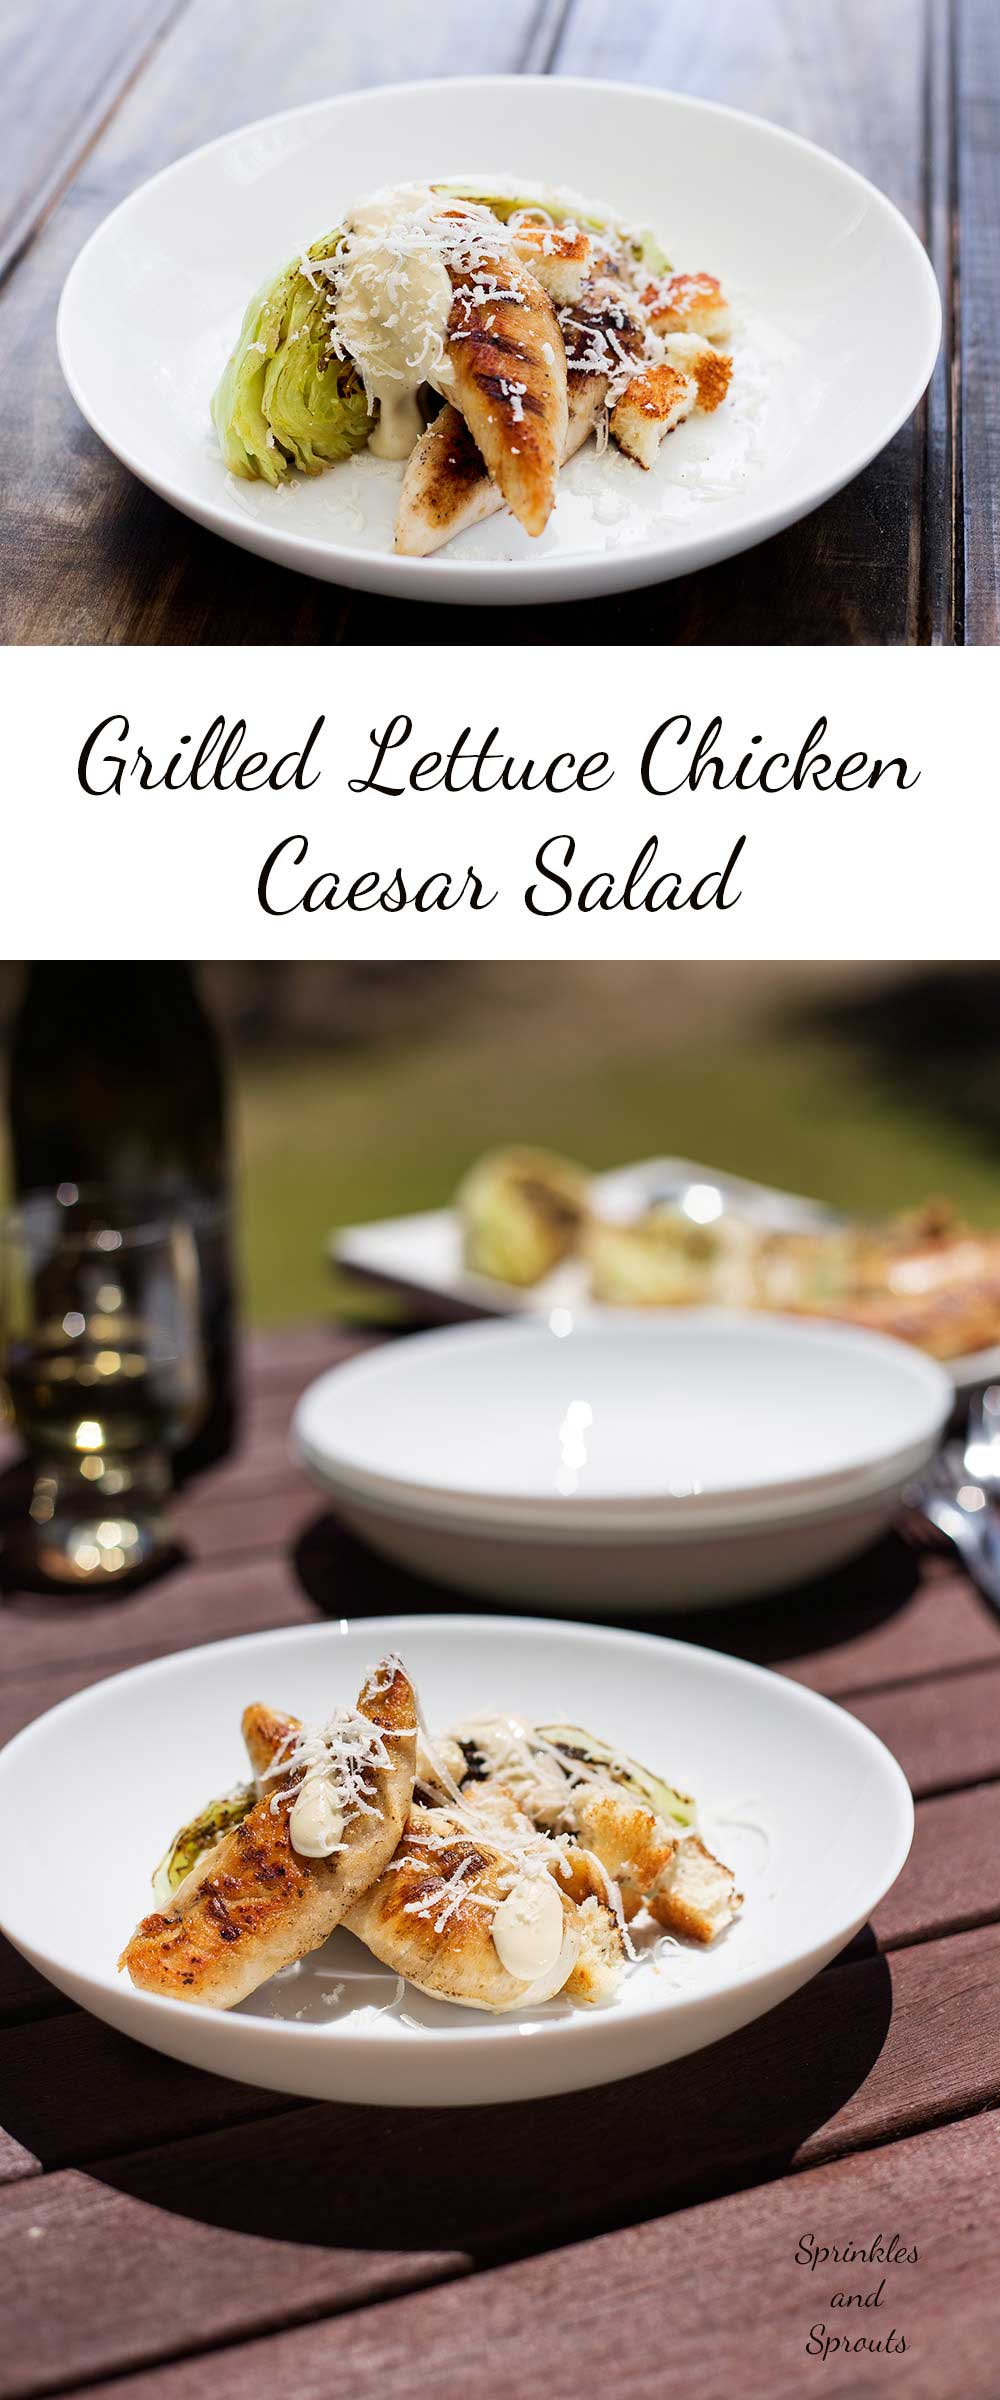 Grilled Lettuce Chicken Caesar Salad. A smoky delicious alternative to the standard chicken salad. This is great for the barbecue | Sprinkles and Sprouts